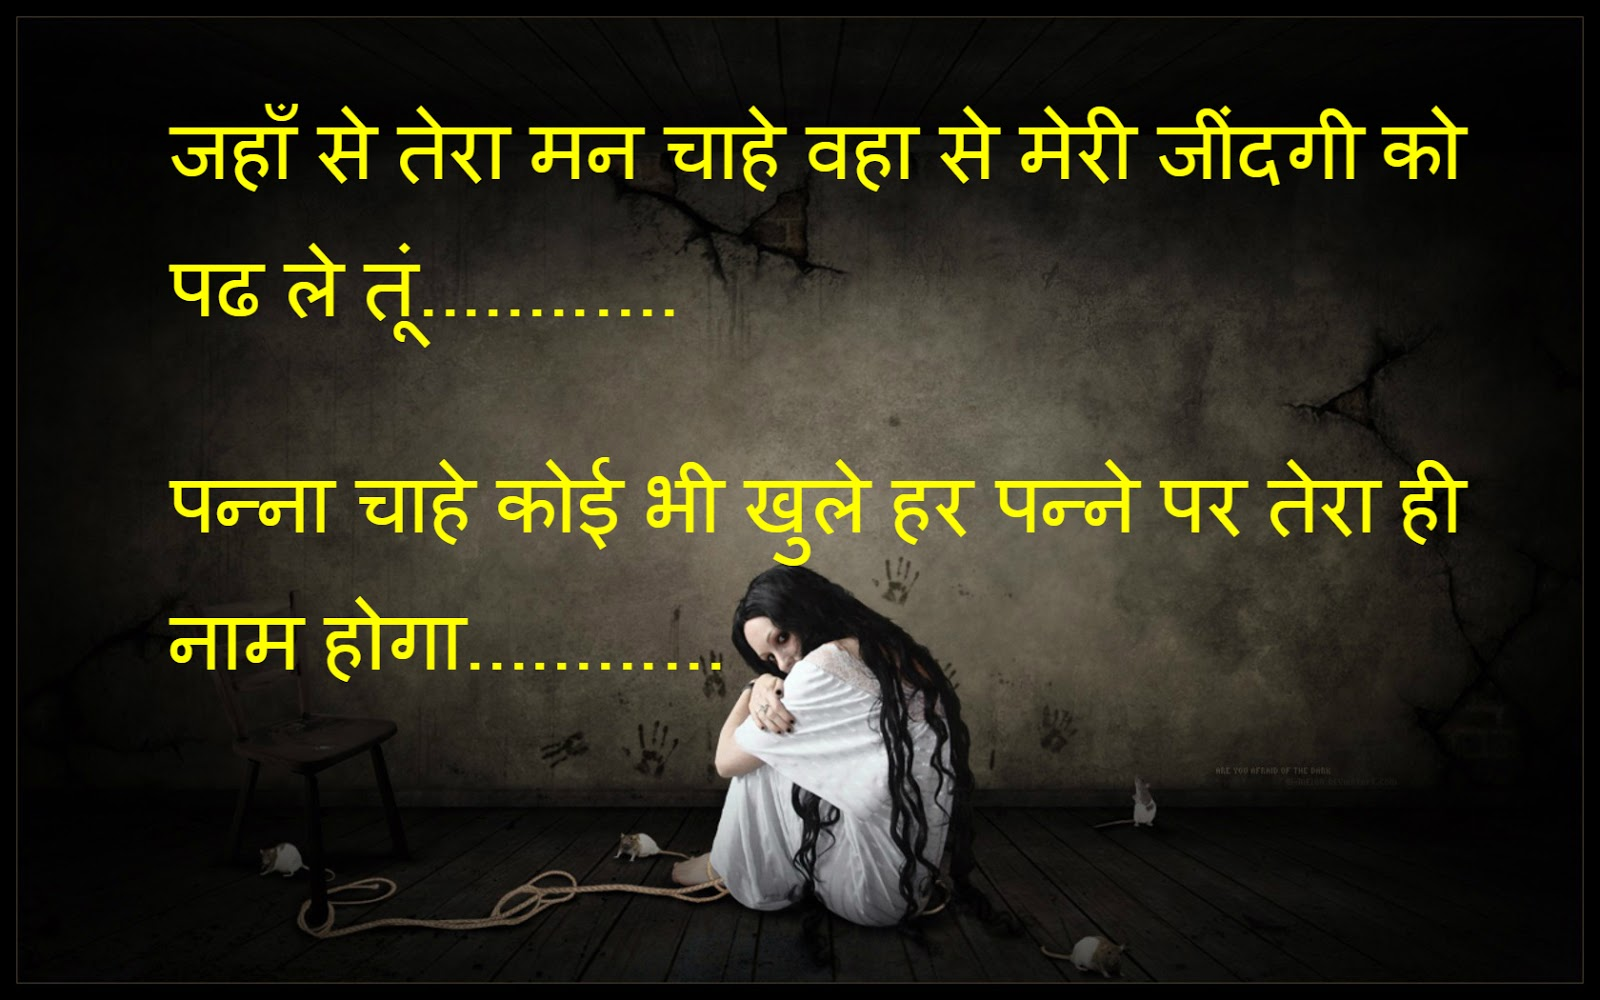 Wallpaper download love shayri - Shayari Hi Shayari Hindi Shayari Image Hindi Love Shayari Sms With 1600x1000